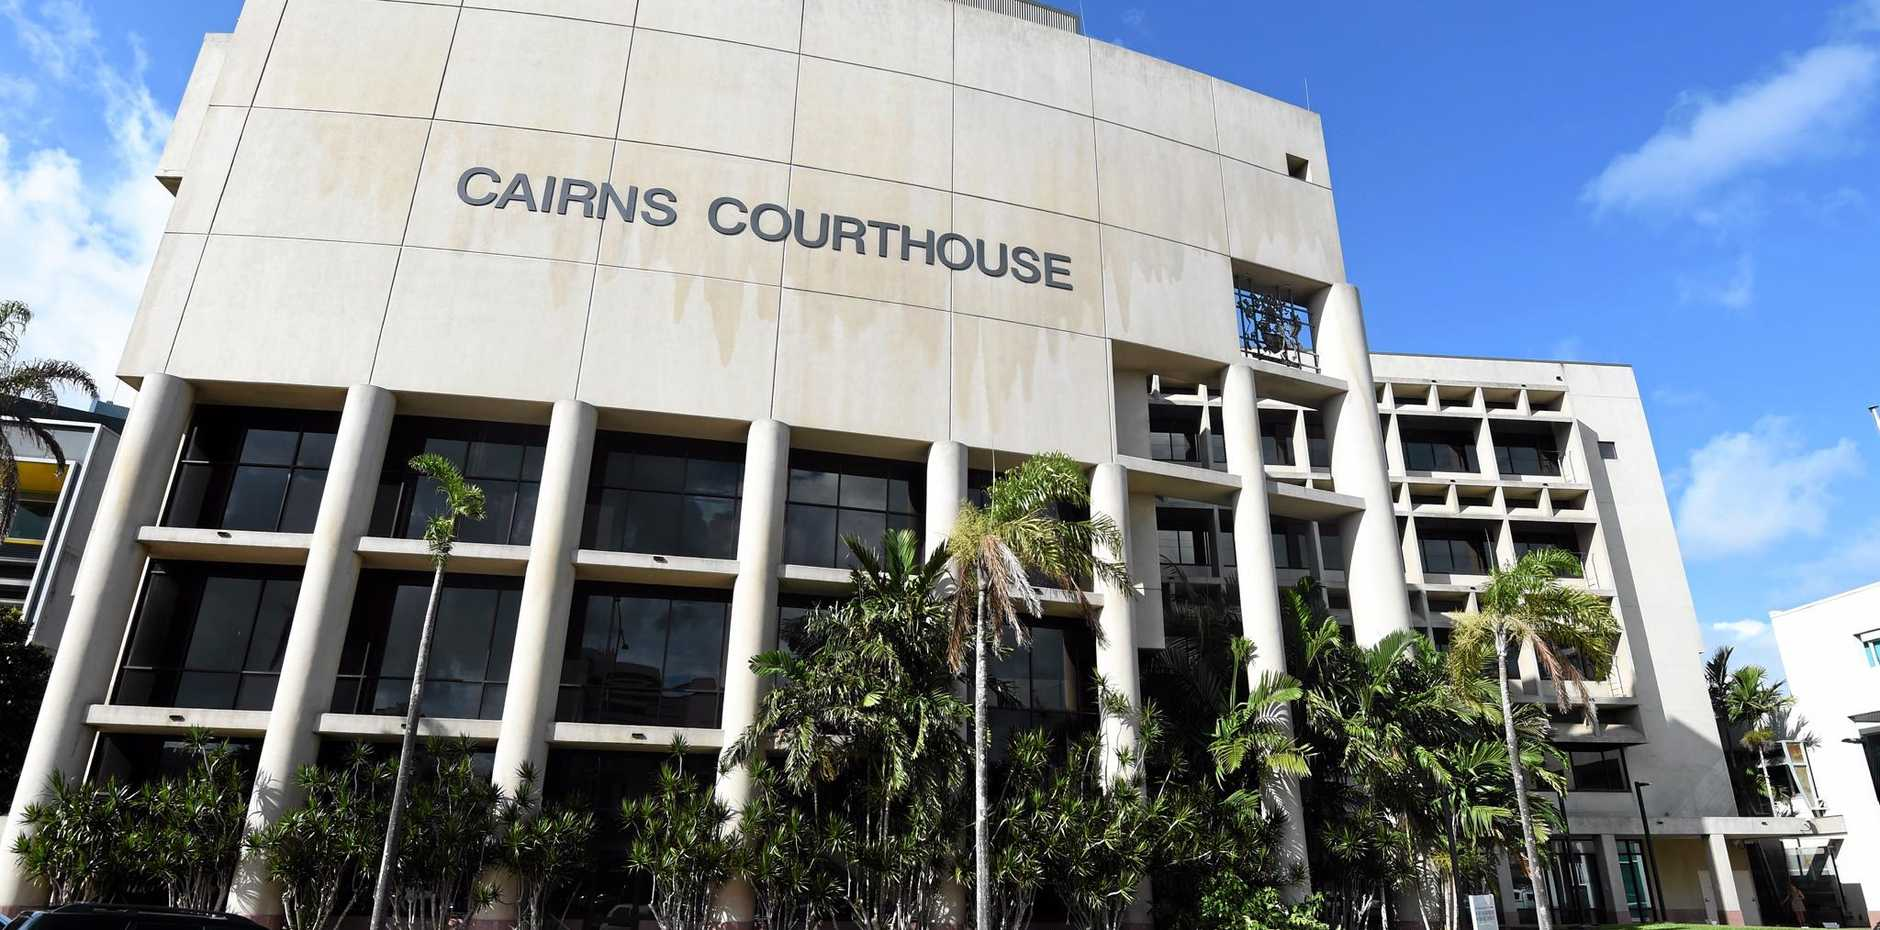 A street view of the Cairns Courthouse, Monday, Dec. 22, 2014. 37-year-old Mersane Warria was excused from appearing in court today after she was charged with the murder of eight children including seven of her own and a niece, at her house on Friday, December 19. (AAP Image/Dan Peled) NO ARCHIVING